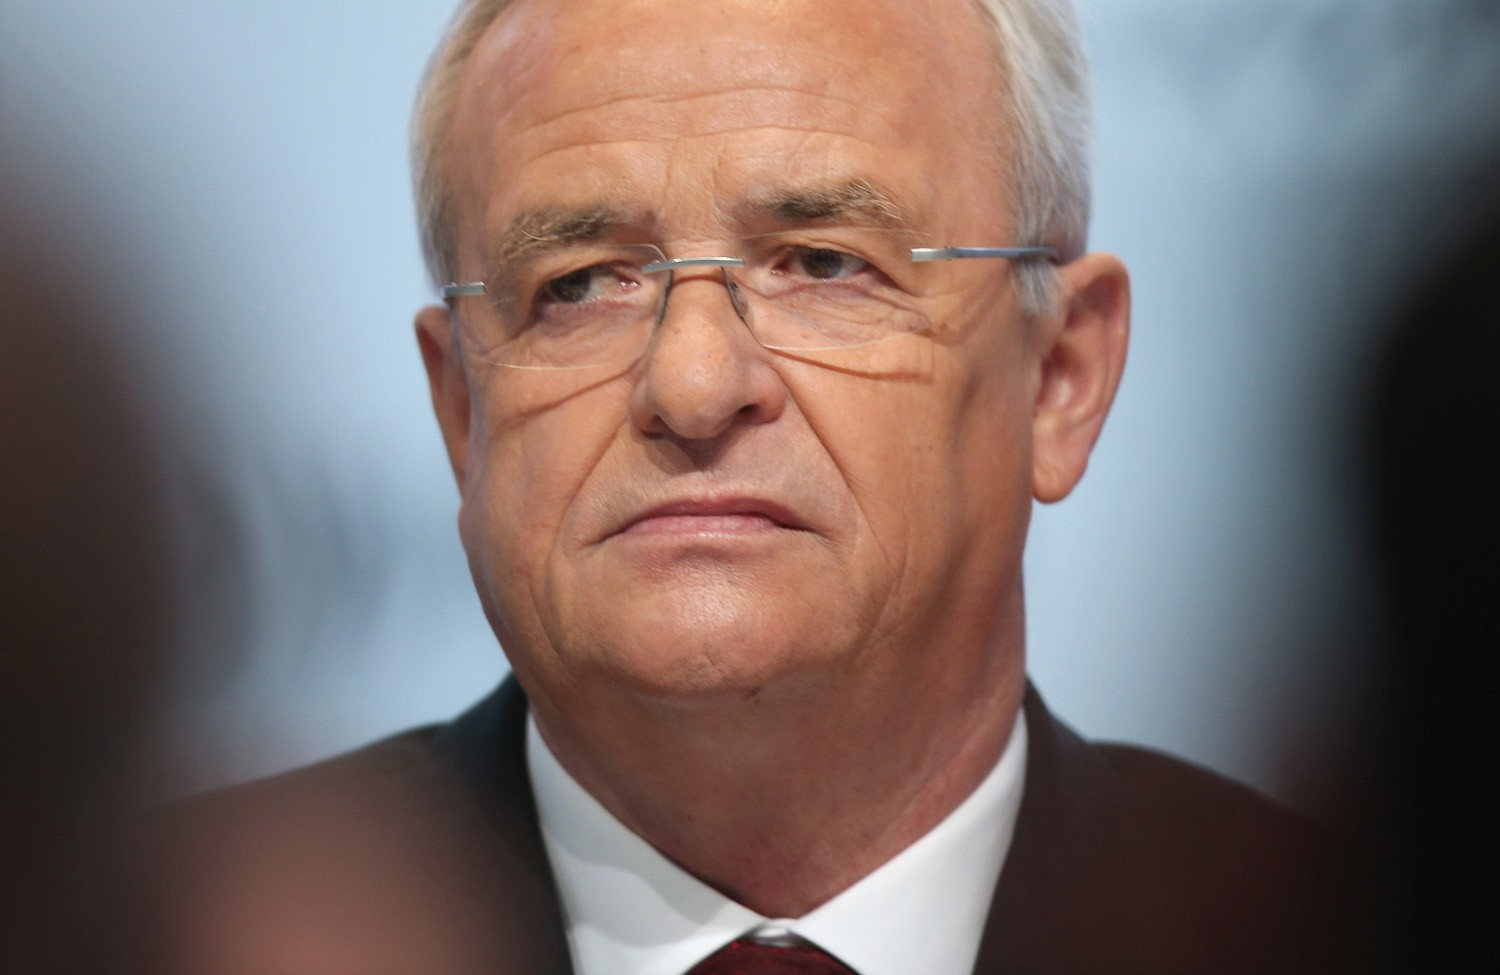 Martin Wintekorn, CEO da Volkswagen  (Foto: Sean Gallup/Getty Images)